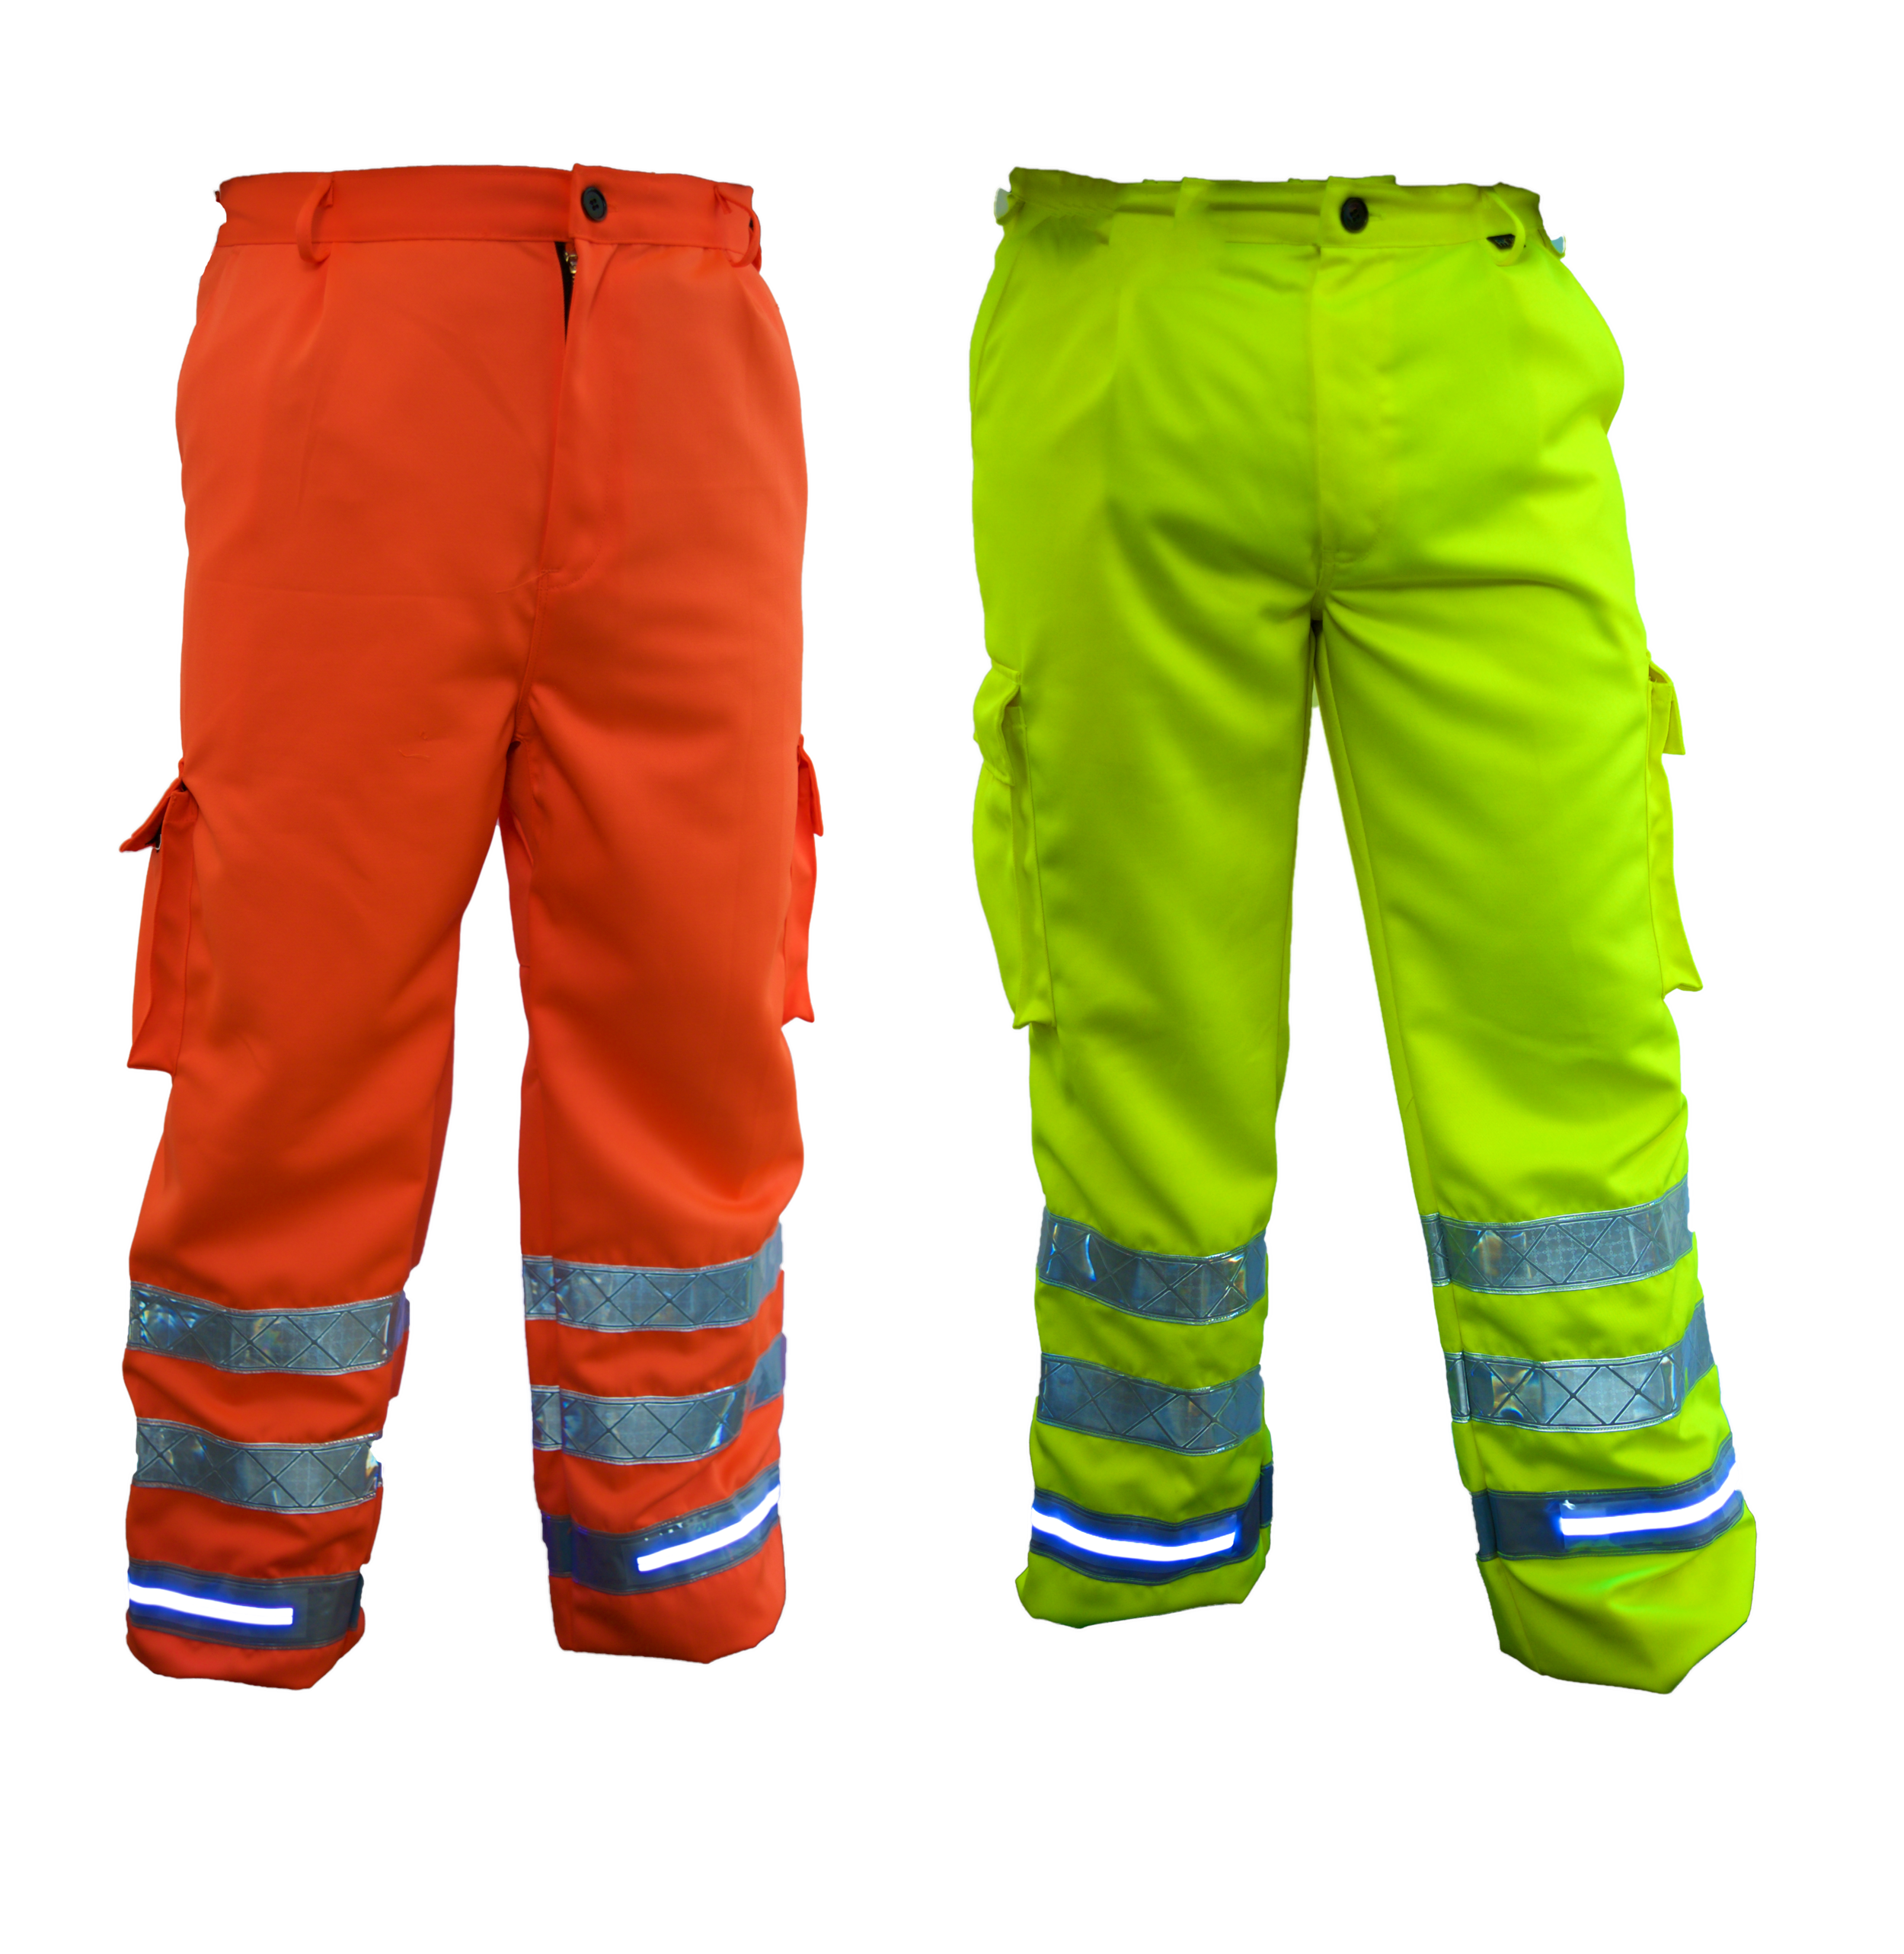 FiSalus Safety Trousers   Casts a glow around the feet to assist in low light • 100% polyester • Sealed Fhoss illuminated strip • Combat pockets • Diamond crotch stitching • Colour options: Yellow & Orange   Test Criteria /  EN ISO 20471:2013 • CSA Z96:02/09 • GO/RT3279 • IP 67 Connector